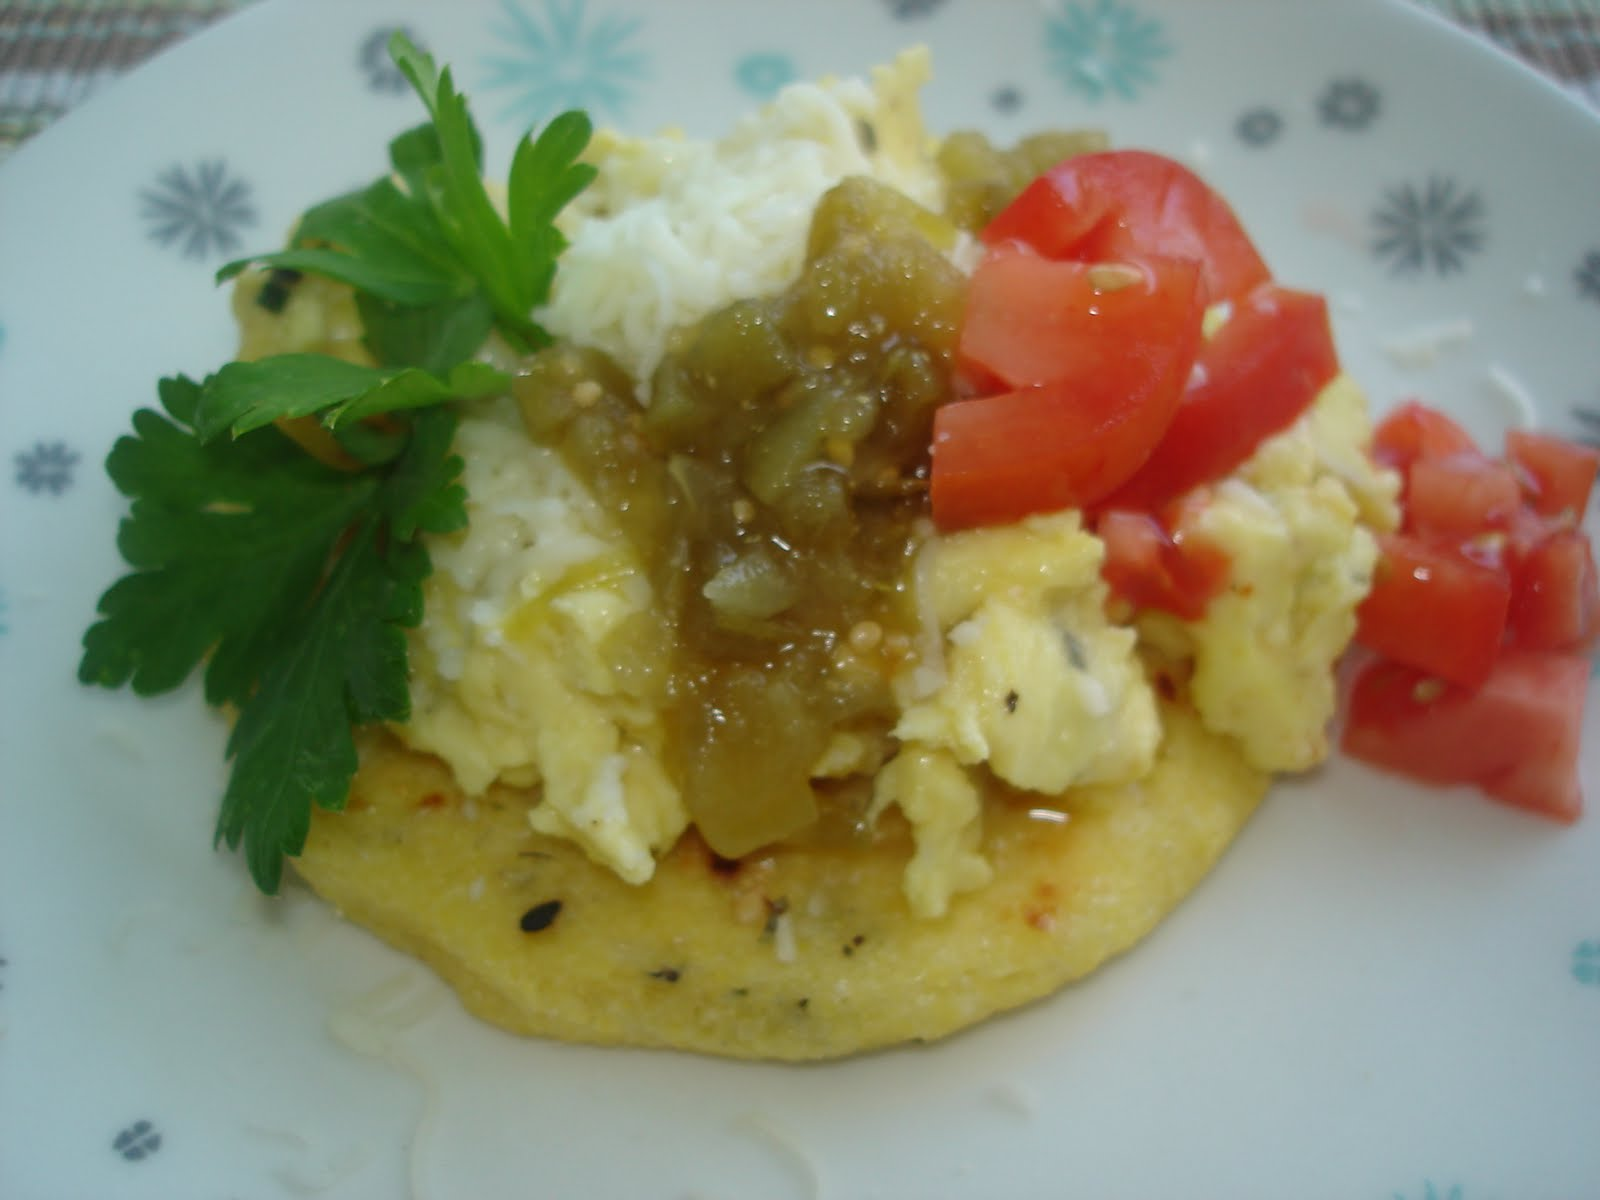 The Tiny Skillet: Brunch Arepas - with scrambled eggs and tomatillos